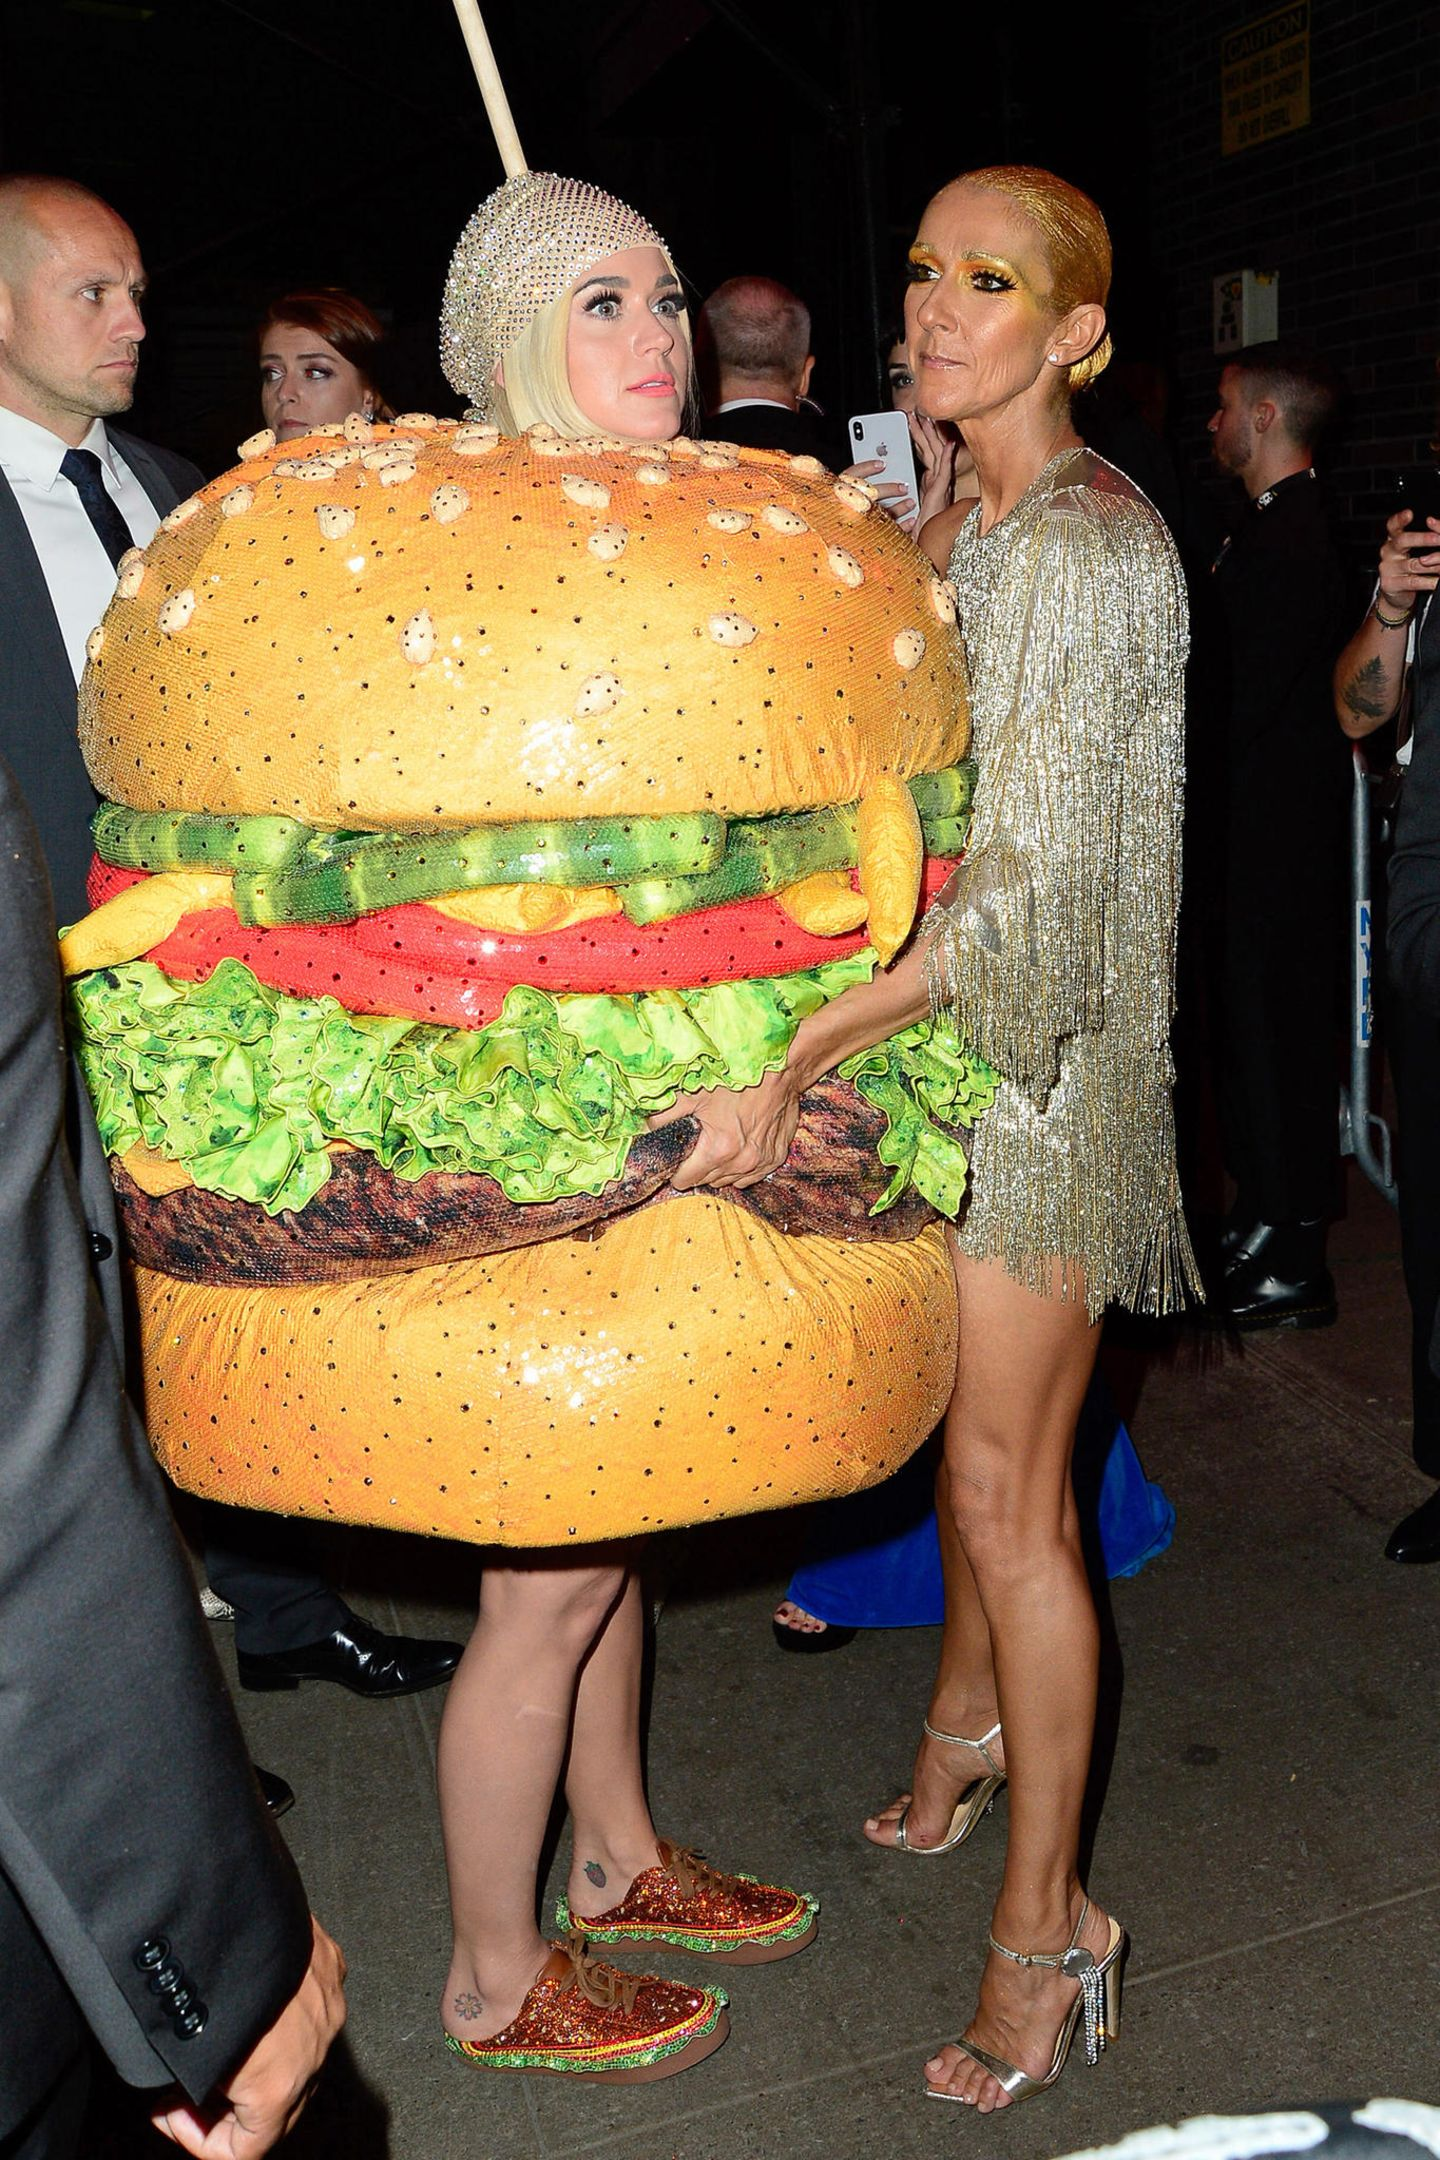 Cheeseburger-Alarm! Ob Celine Dion beim Anblick von Katy Perrys Aftershow-Look wohl Hunger bekommt?